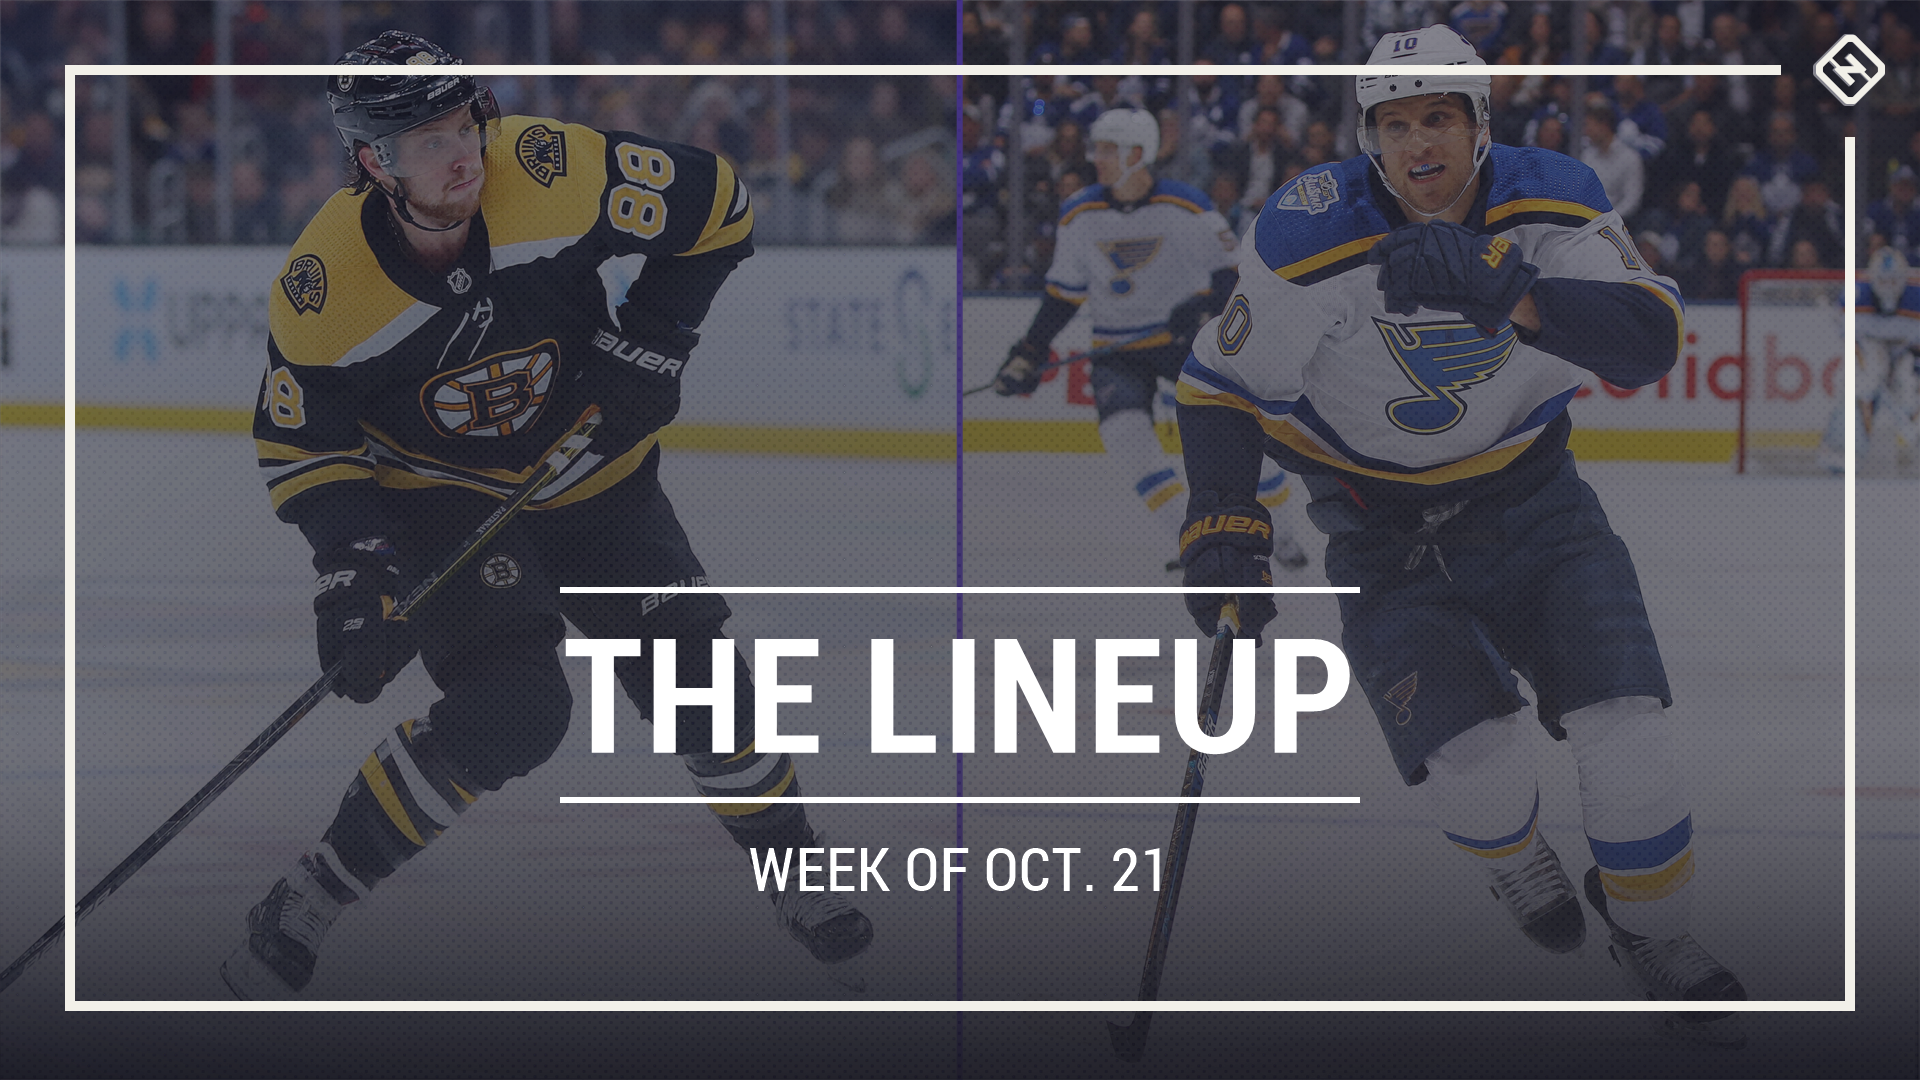 The Lineup: Boston Bruins, St. Louis Blues meet in Stanley Cup Final rematch in week of Oct. 21